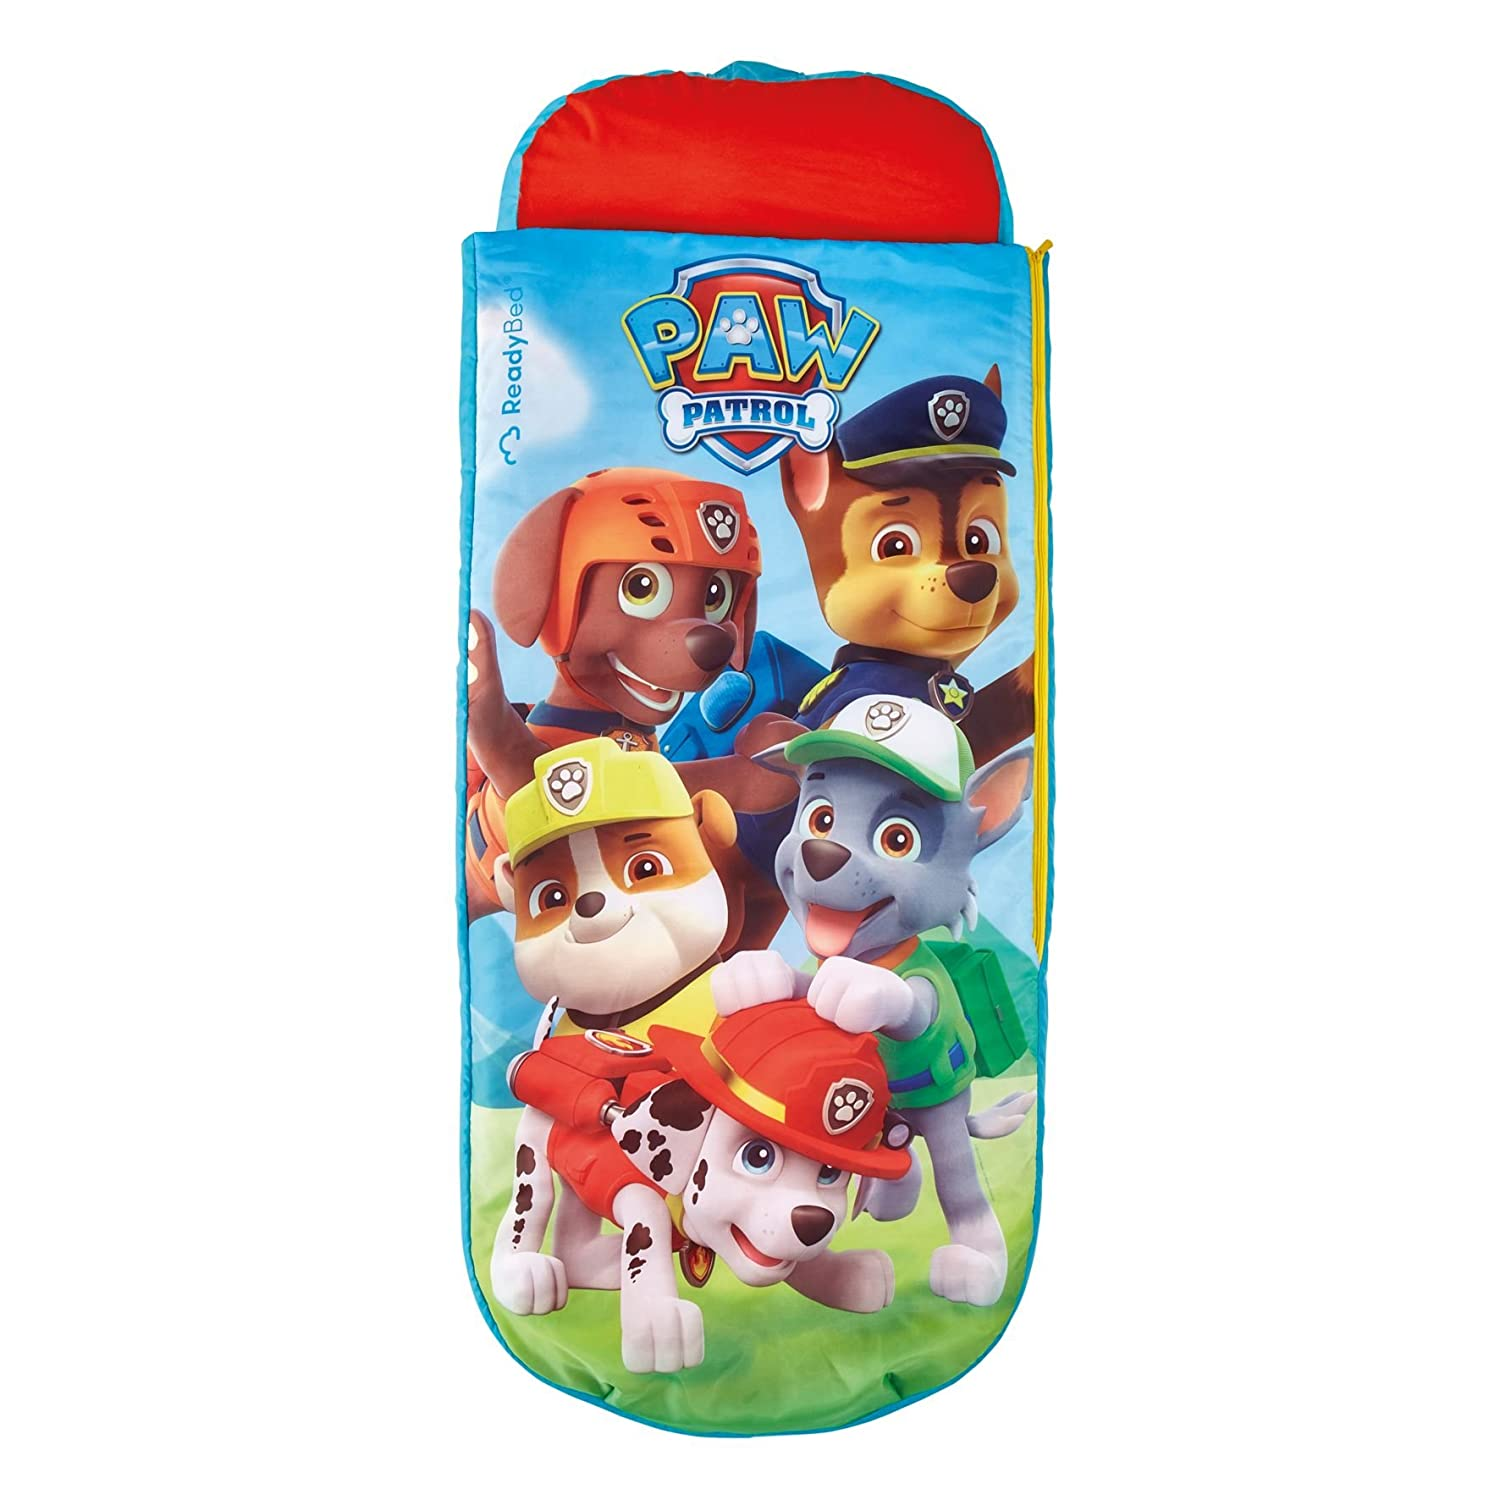 Amazon.com: Readybed Paw Patrol Airbed and Sleeping Bag in One: Toys & Games